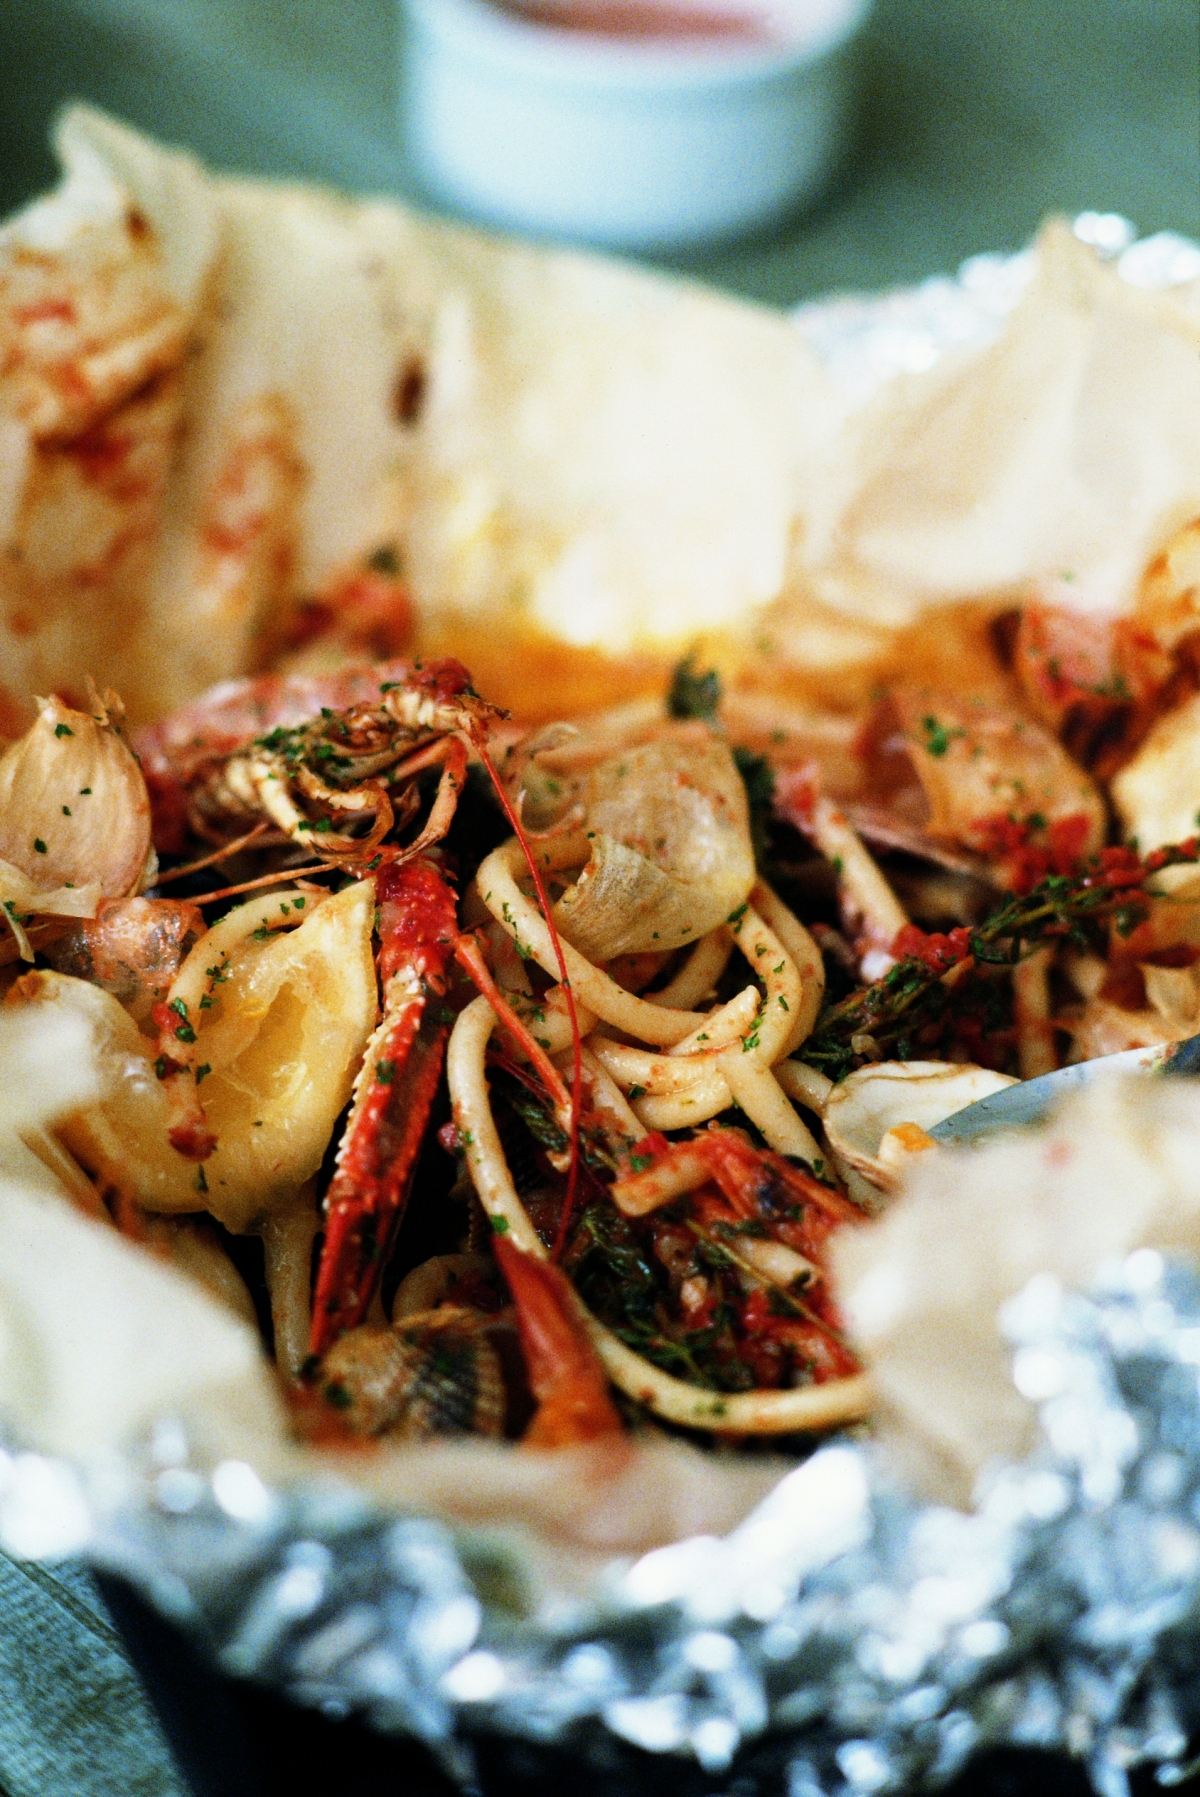 Recipe: Baked Shellfish with Bucatini, Whole Roasted Garlic and Thyme by Mitch Tonks